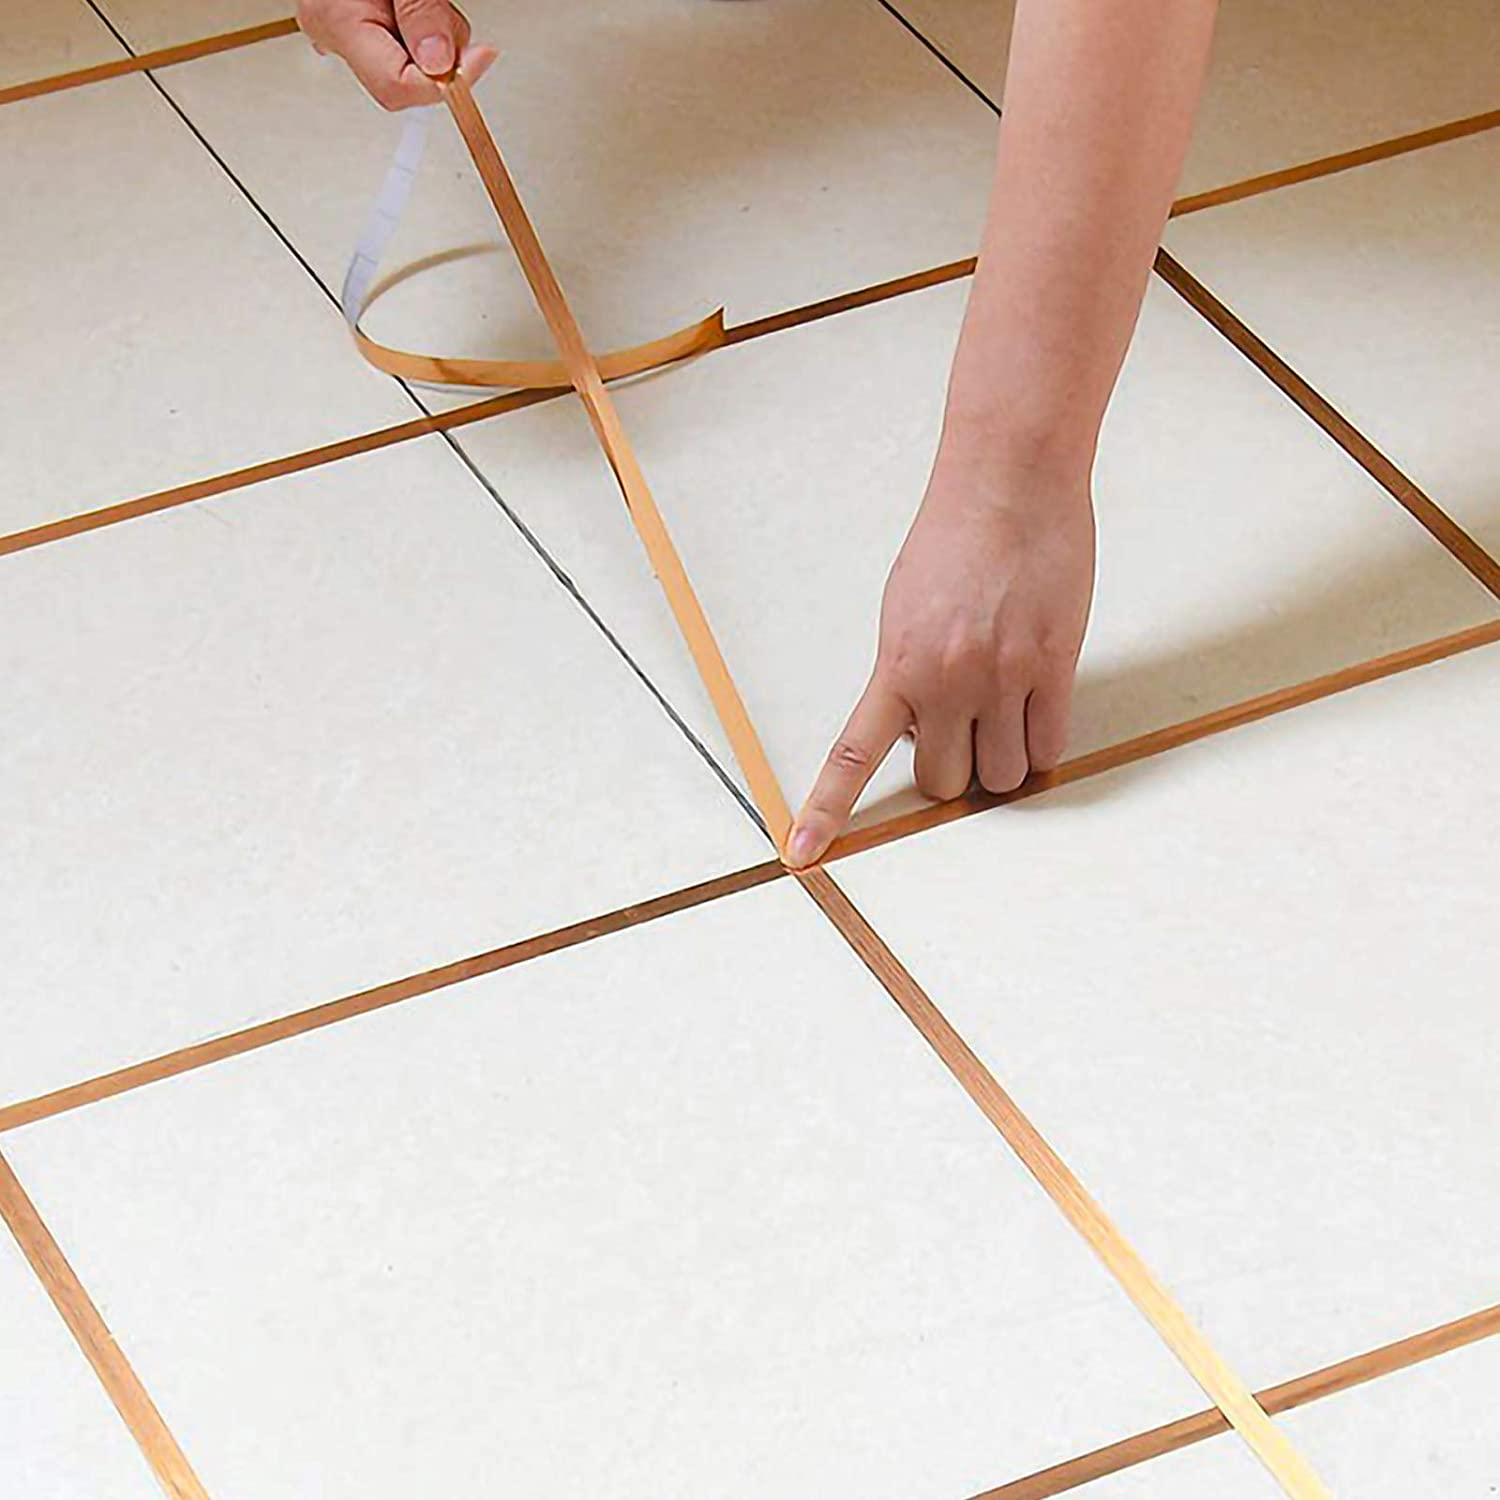 Eanpet 0.8 Inch x 166 Ft Tile Stickers Decorative Floor Wall Sticker Foil Line Peel and Stick Adhesive Waterproof Gap Cover for Kitchen Bathroom Living Room Bedroom (1pc Roll) Gold